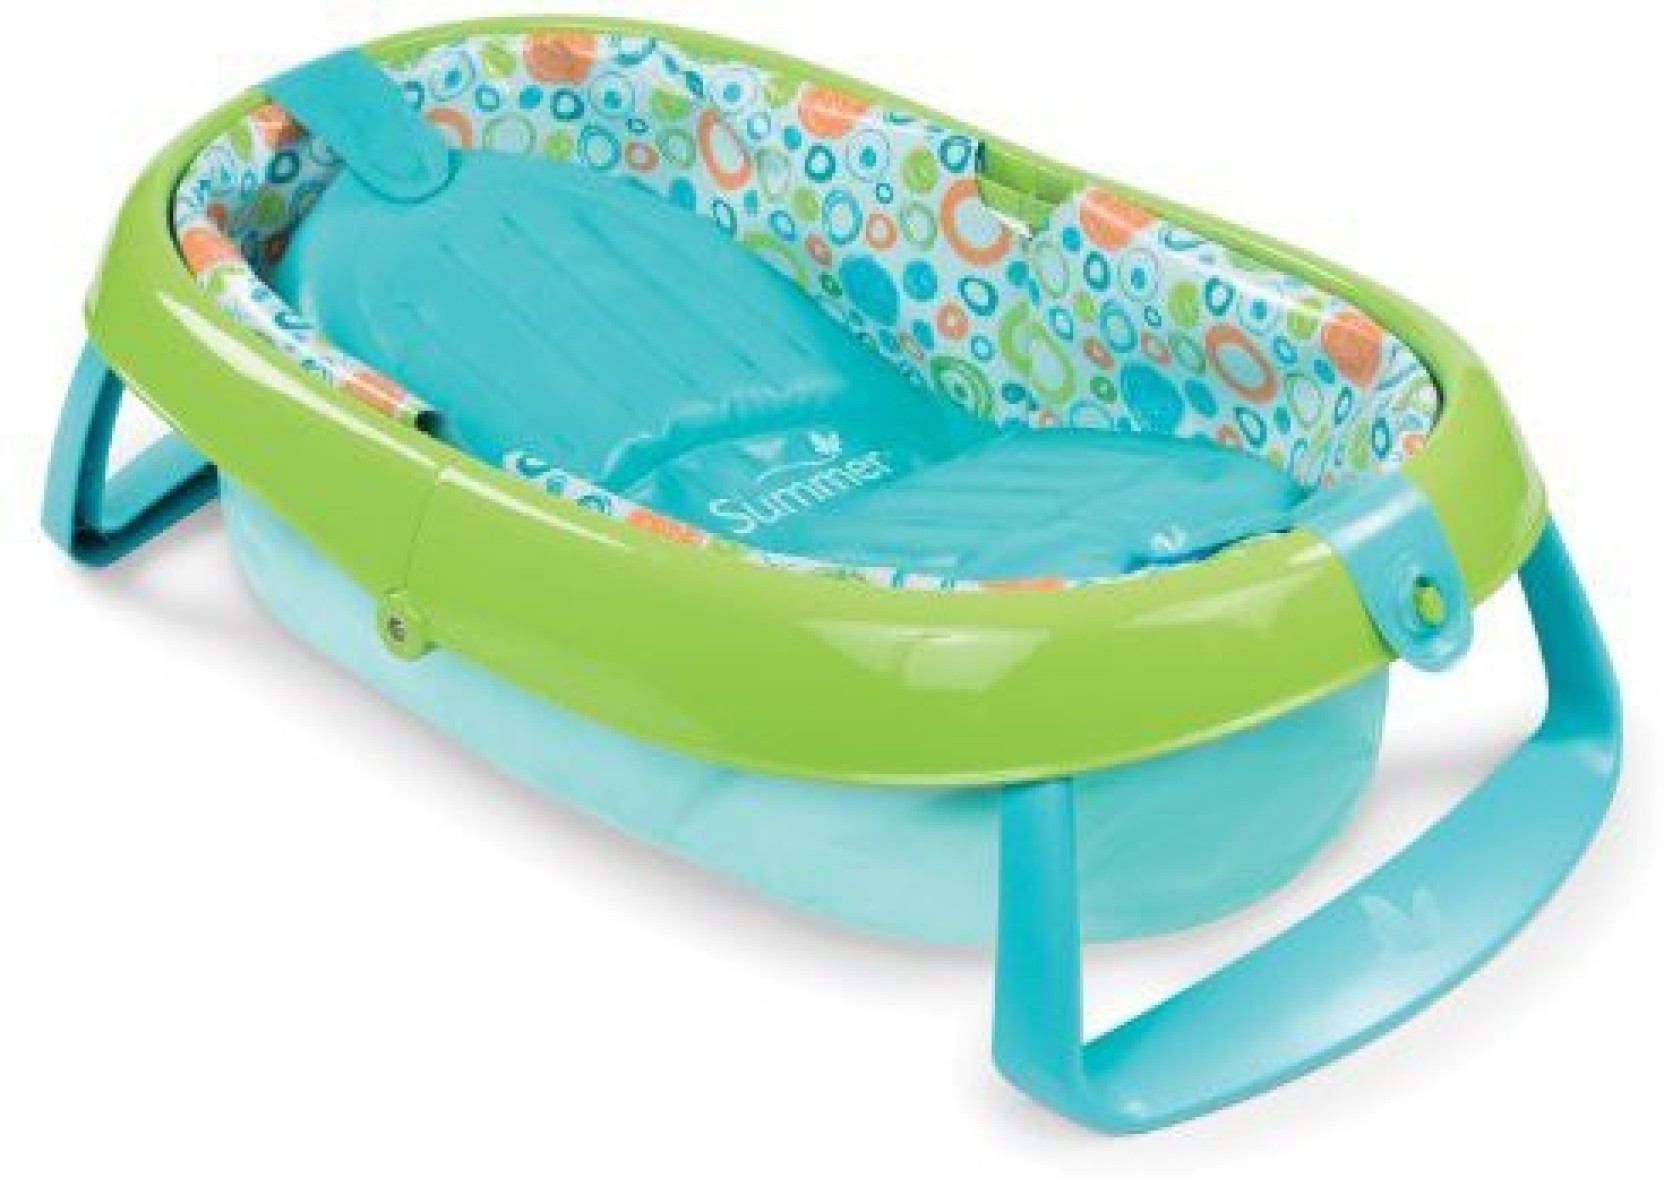 Summer Infants EasyStore Comfort Tub - Neutral Price in India - Buy ...